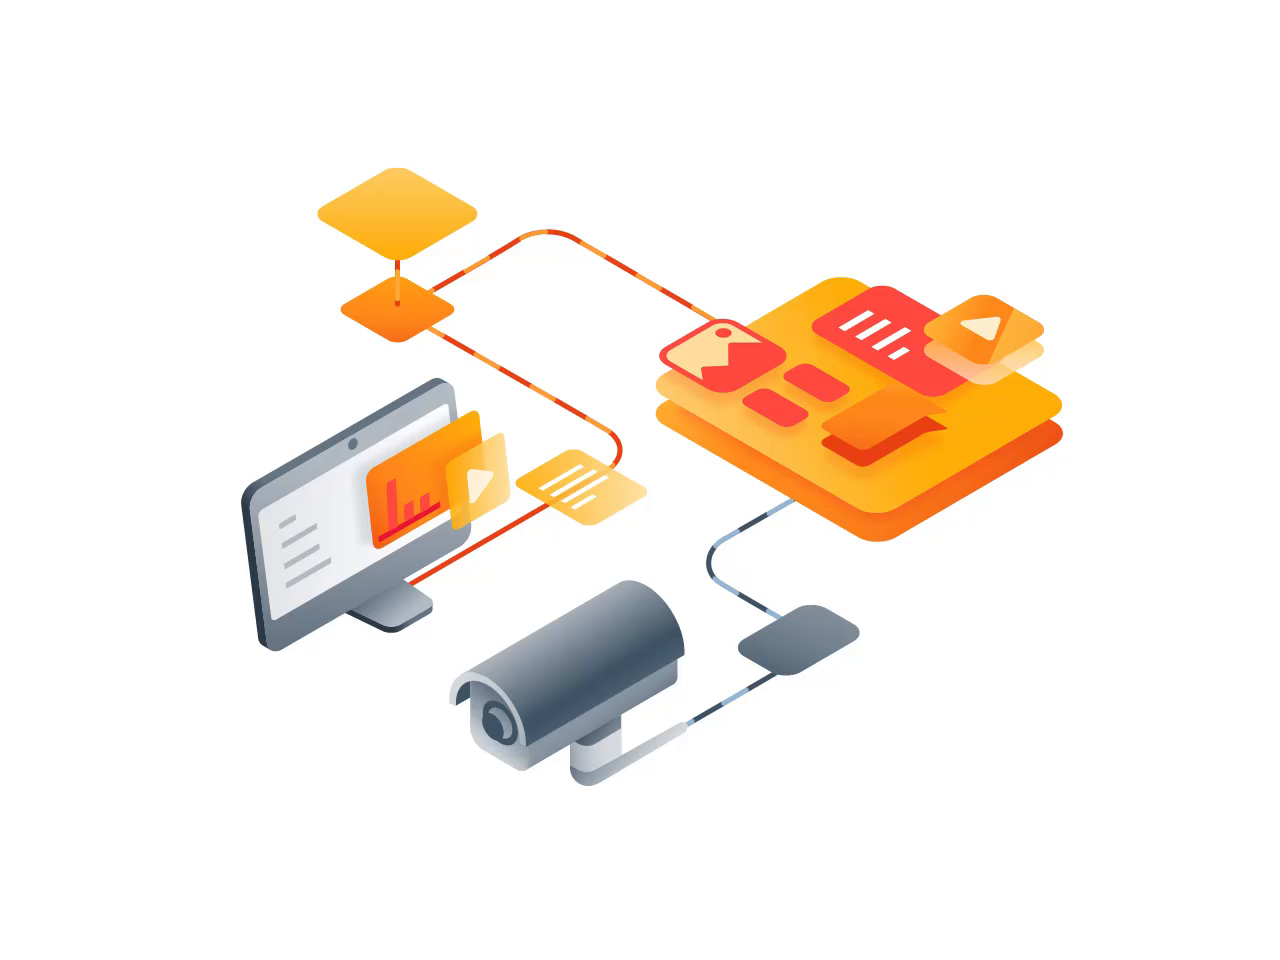 Cellebrite Illustrations - pt  2 by Ramotion on Dribbble